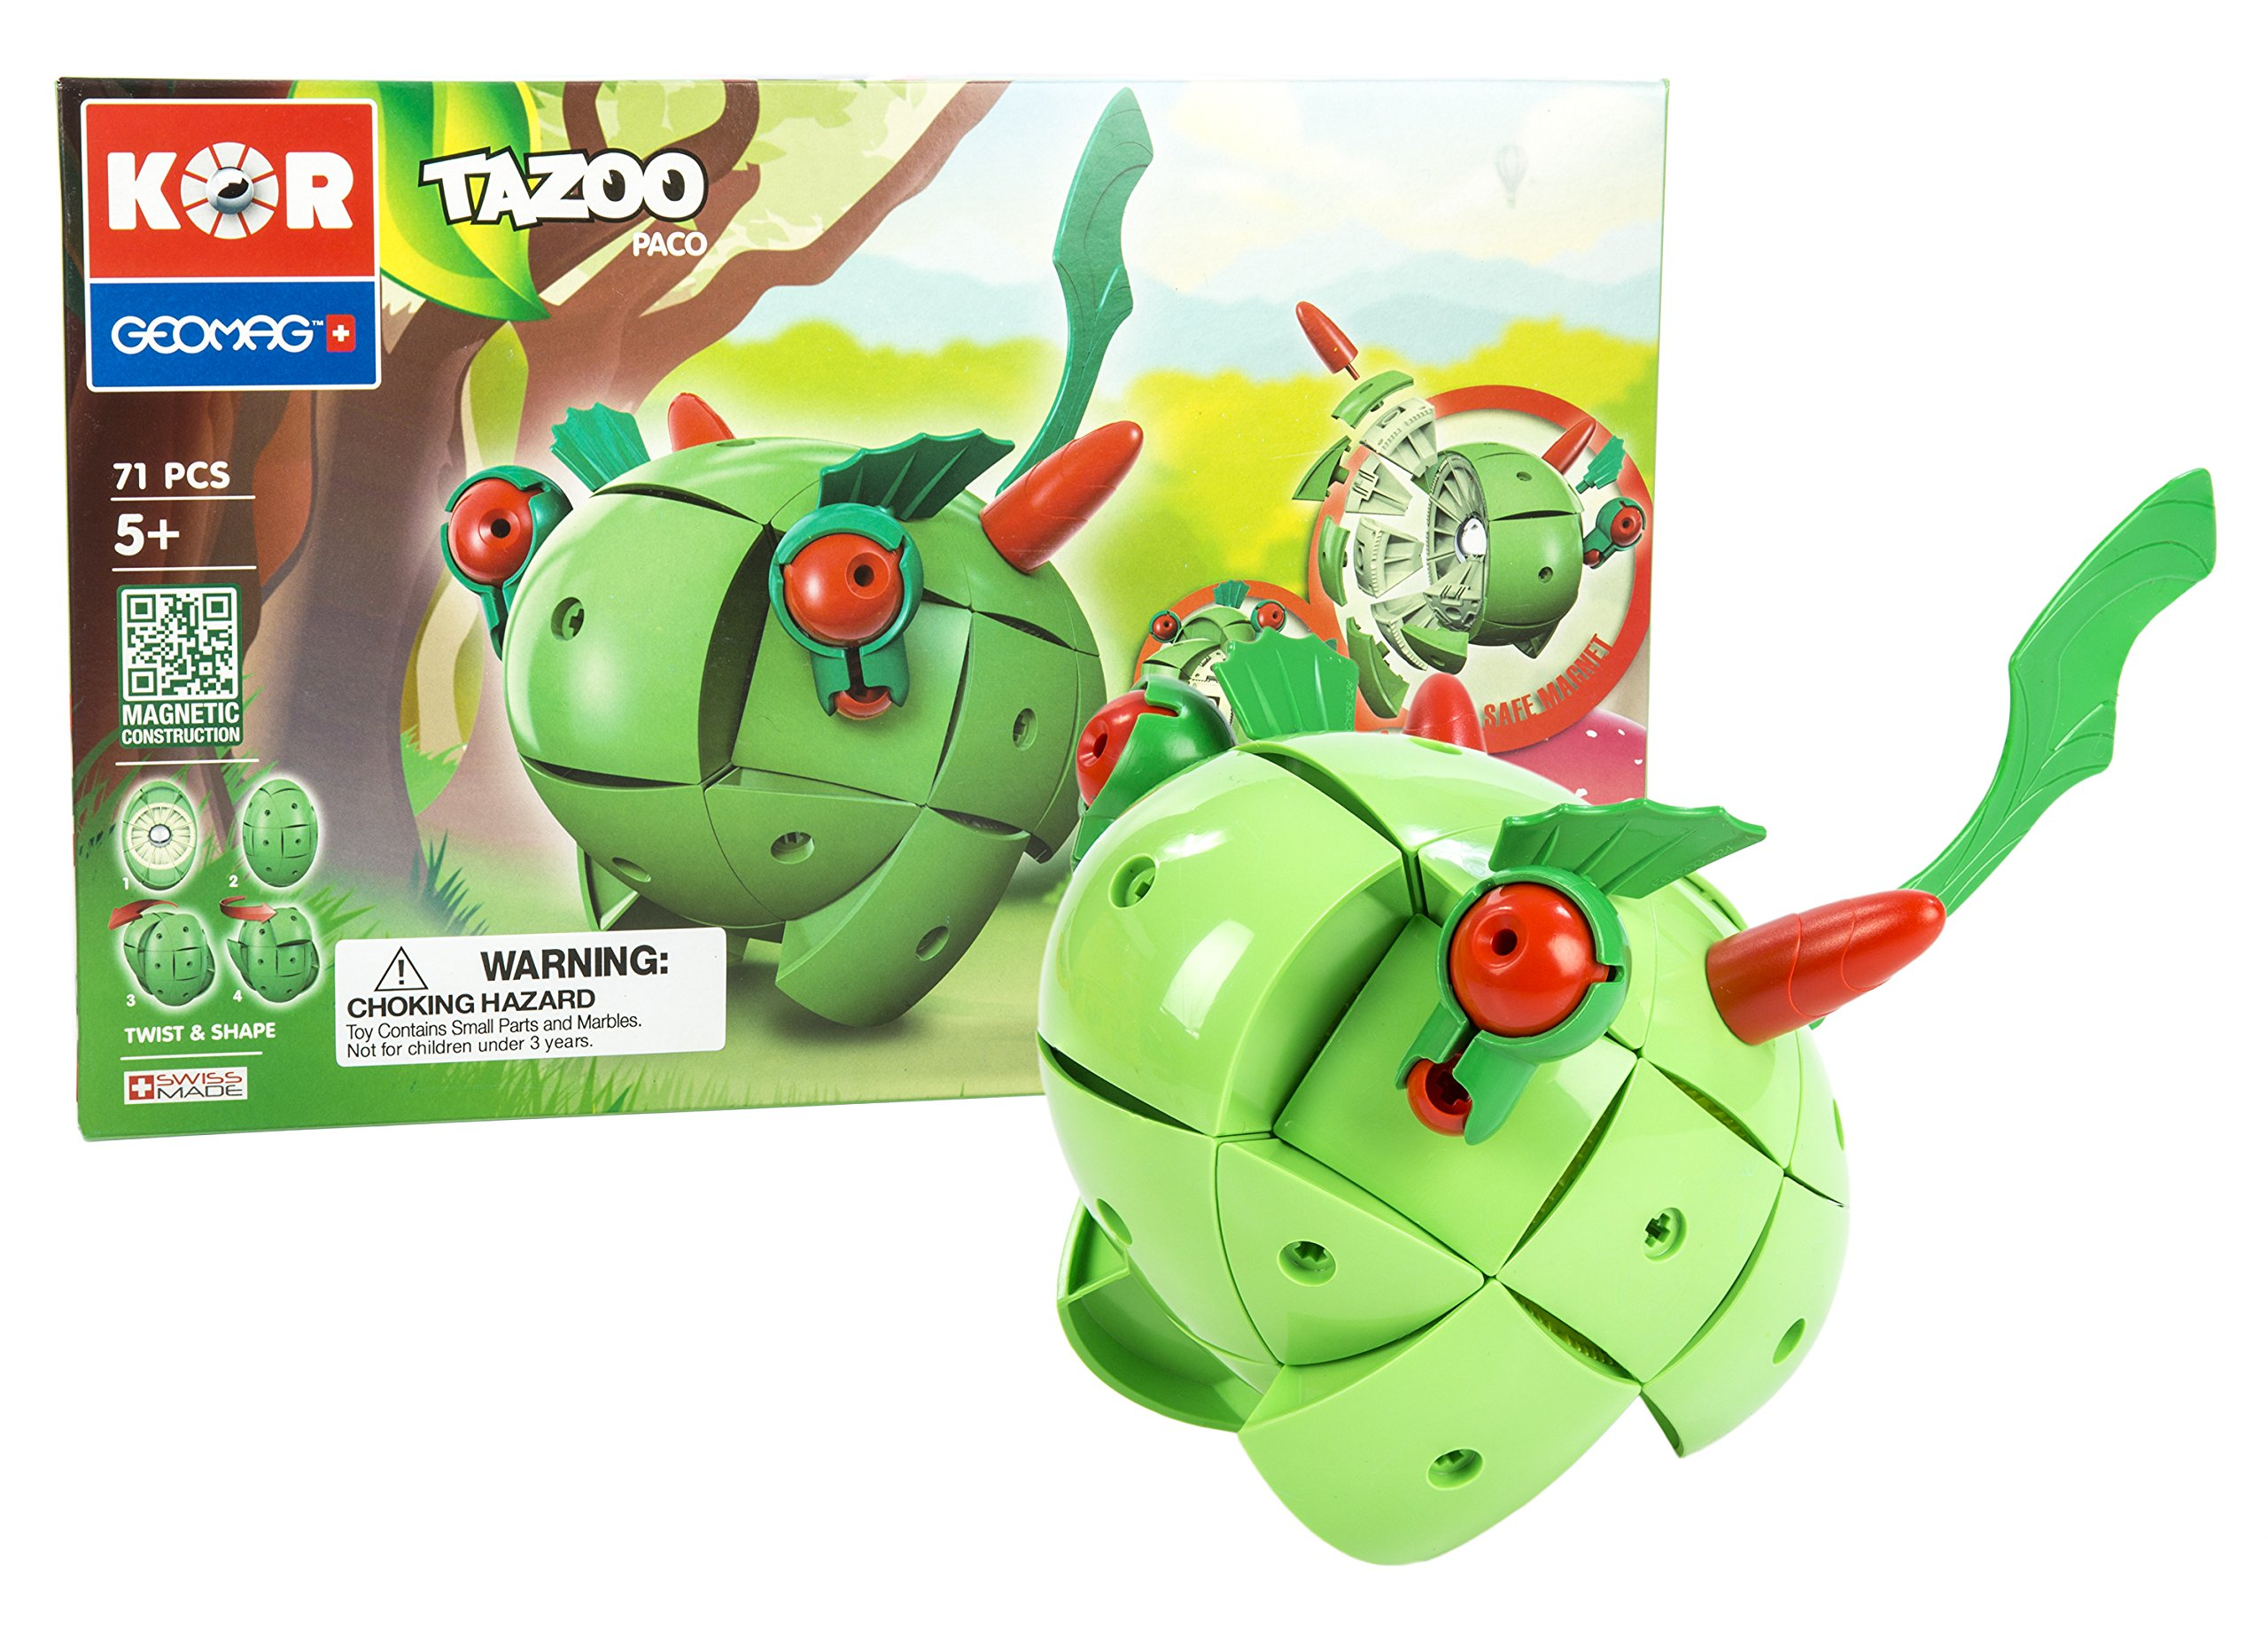 Geomag Kor TAZOO Paco - 71 Piece Creative Magnet Transformative Playset Toy for Both Boys and Girls - Swiss Made - Part of Geomag's World Famous Award Winning Product Line - Ages 5 and Up